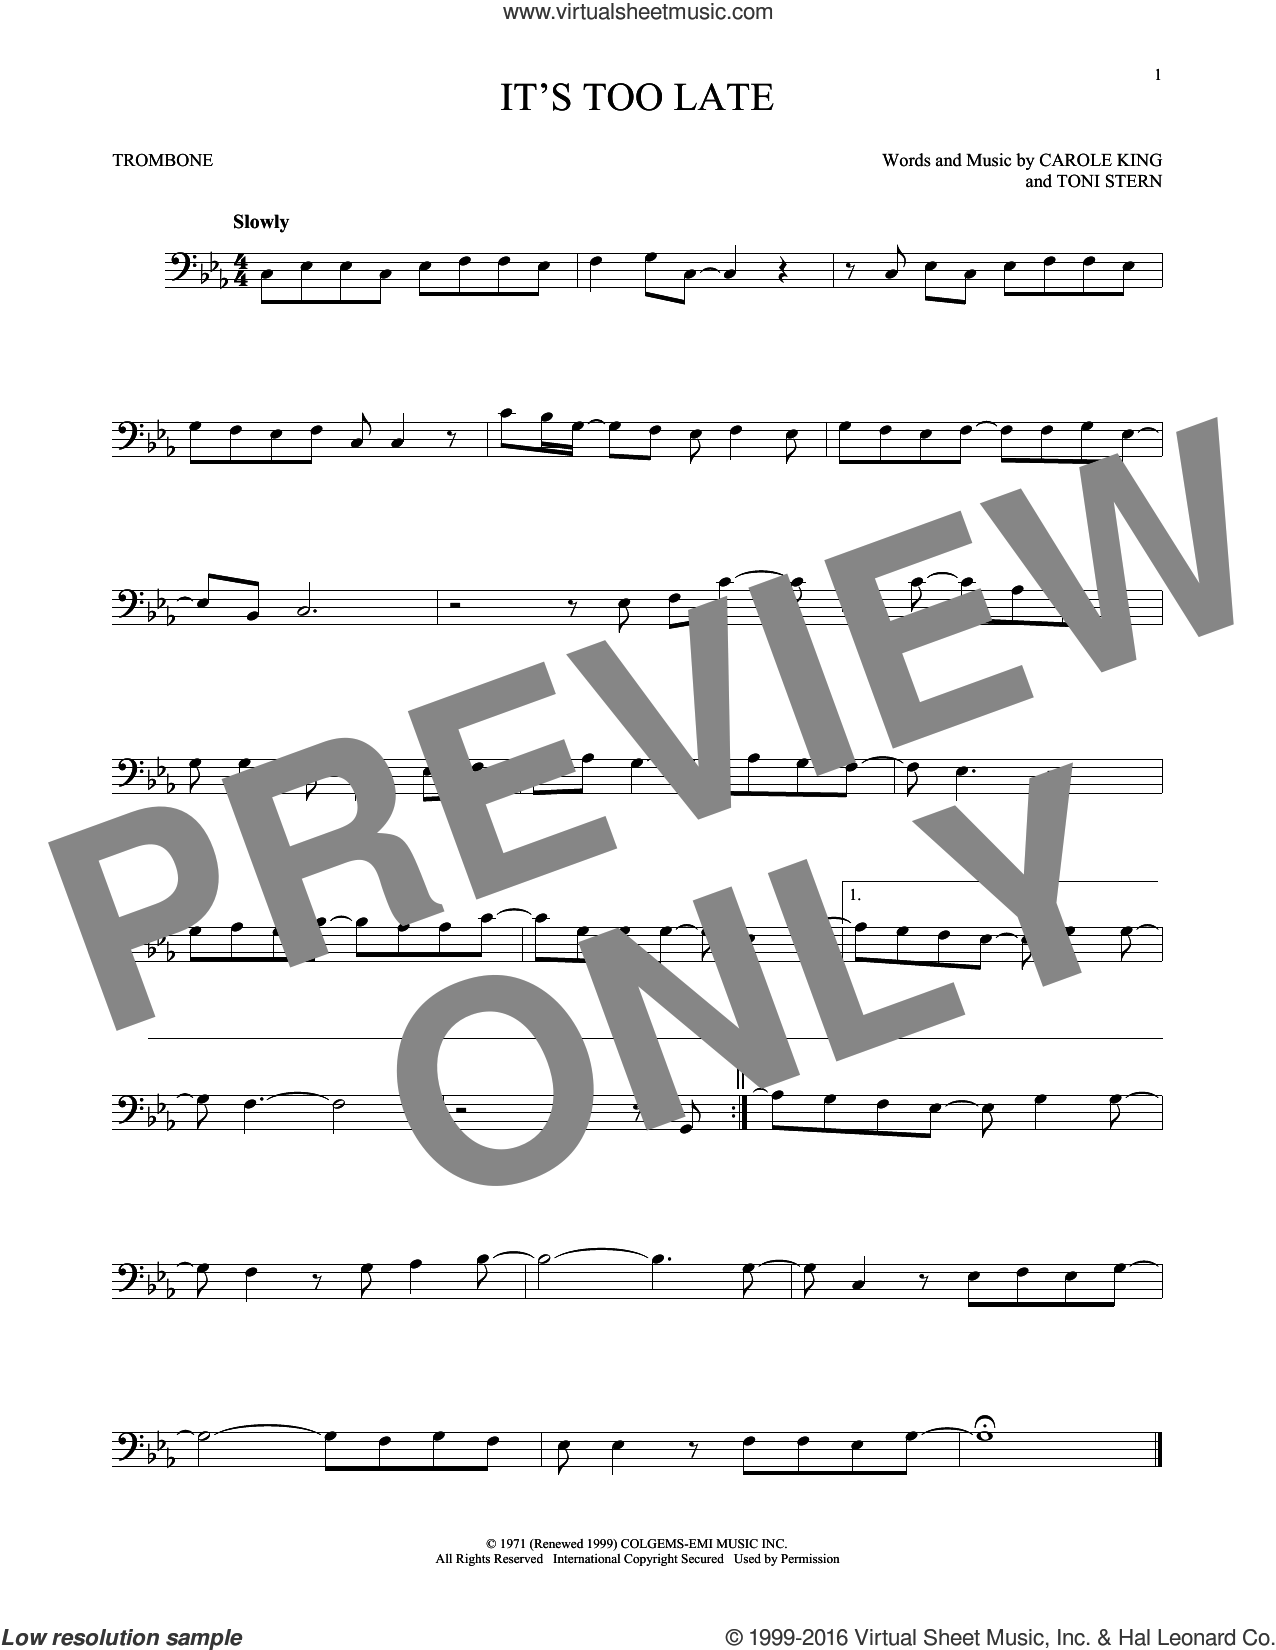 It's Too Late sheet music for trombone solo by Carole King, Gloria Estefan and Toni Stern, intermediate skill level